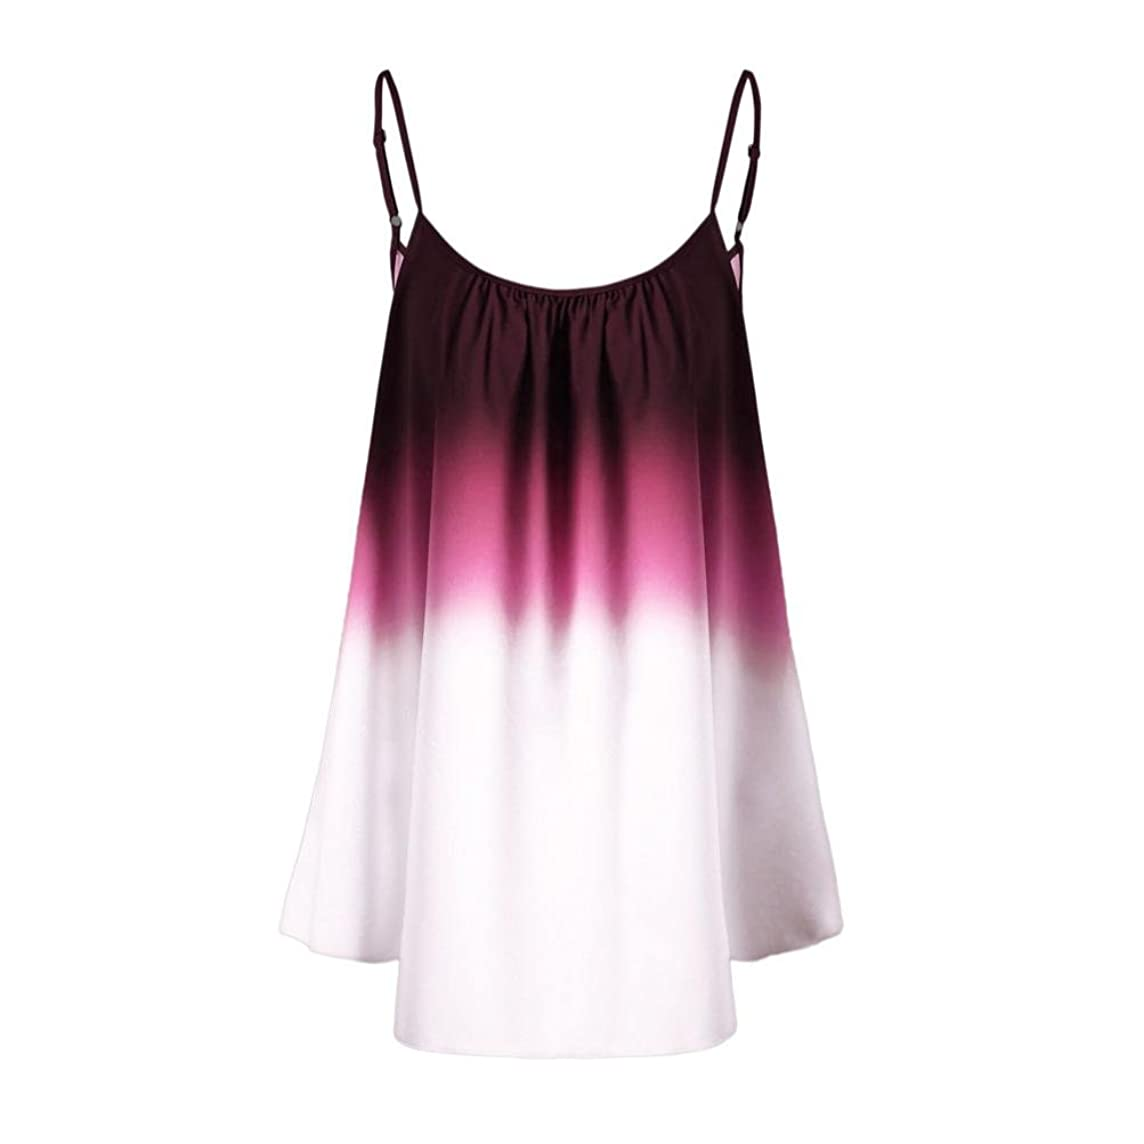 Wintialy Women's Casual Gradient Sleeveveless Ombre Cami Top Trim Tank Top Blouse